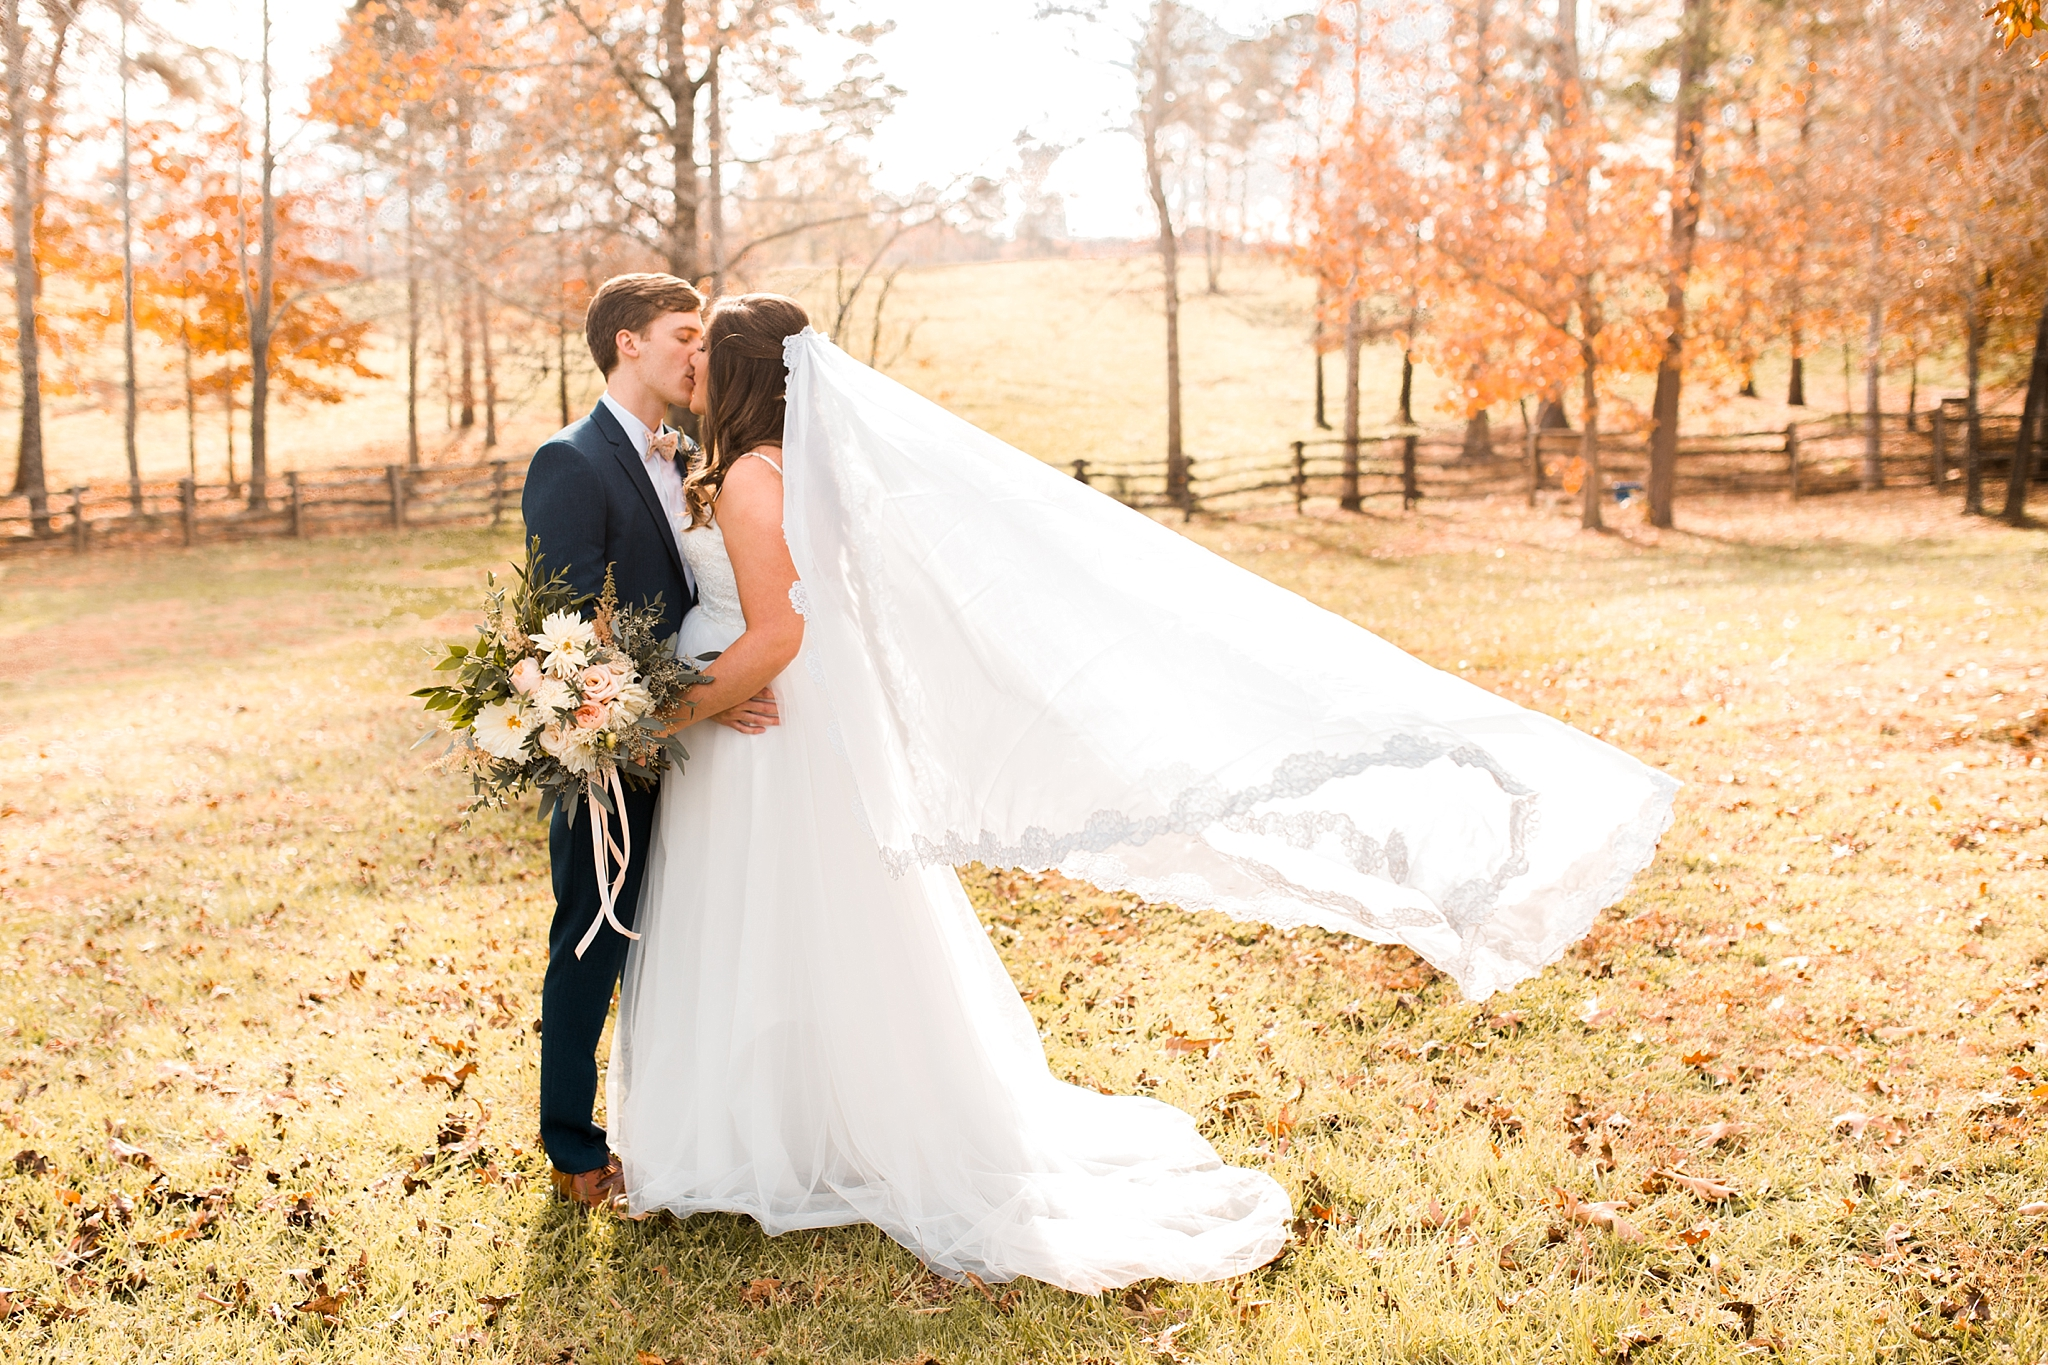 walters barn GA wedding photographer